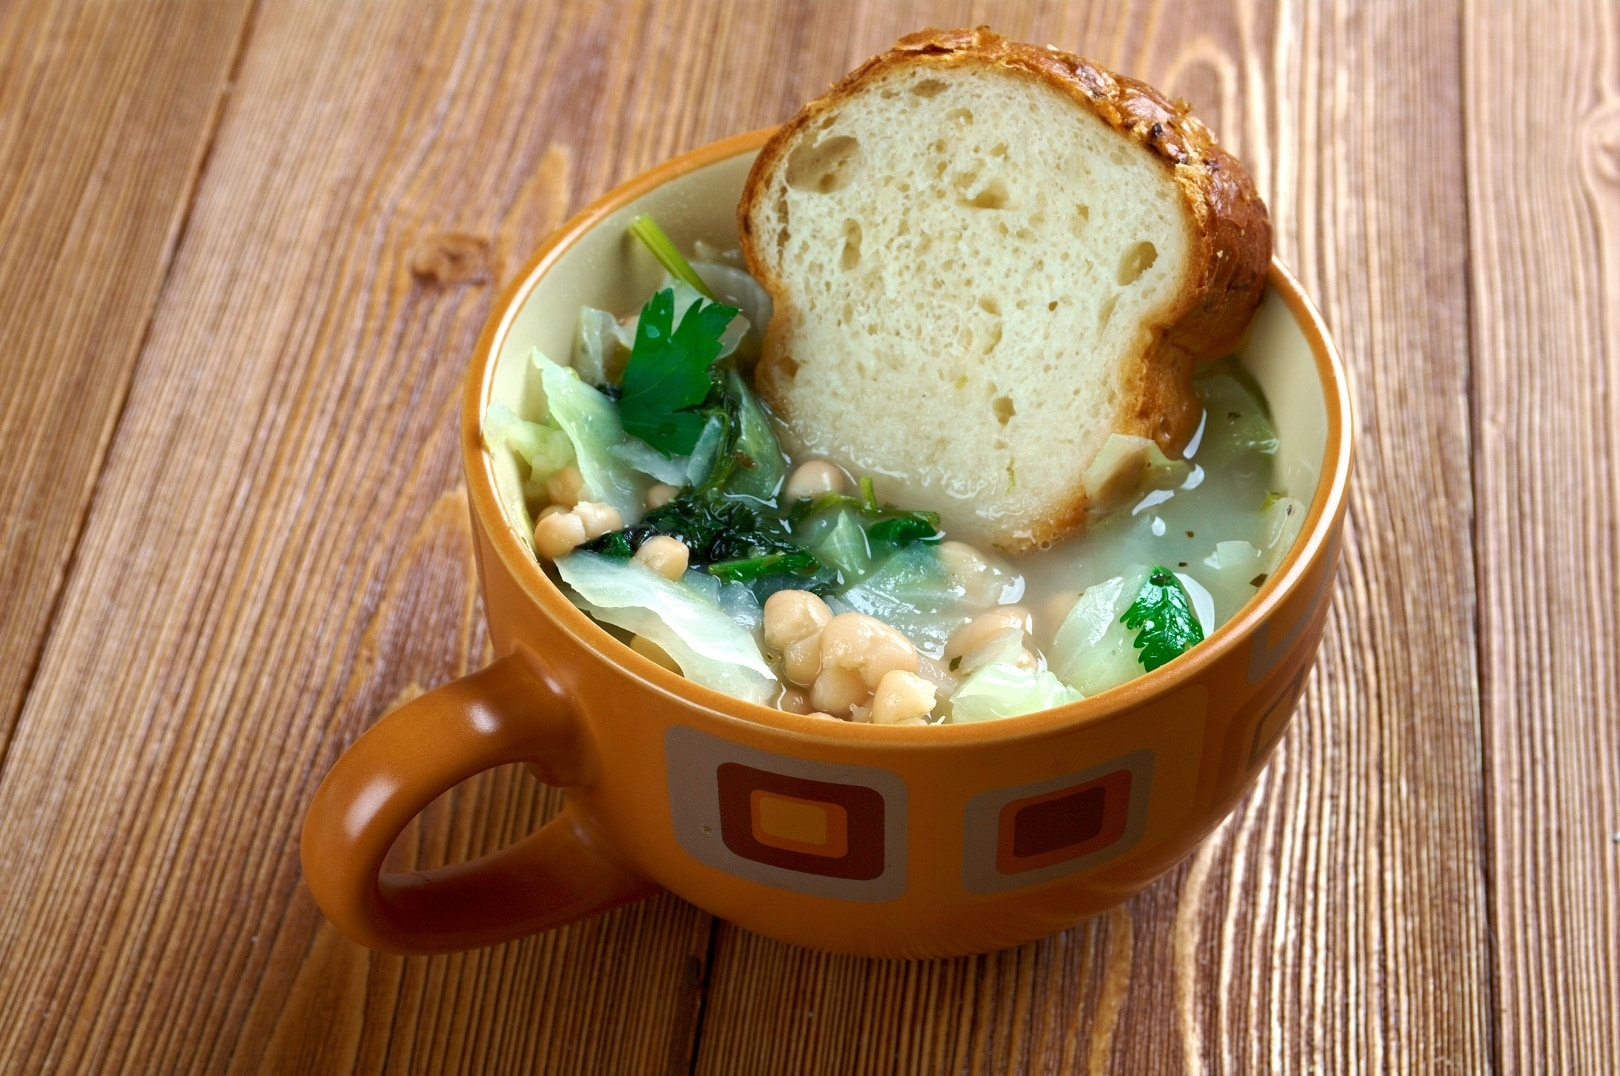 Five Hearty Soup Recipes - Five Hearty Soup Recipes That Will Make Your 3 y/o Dry Heave